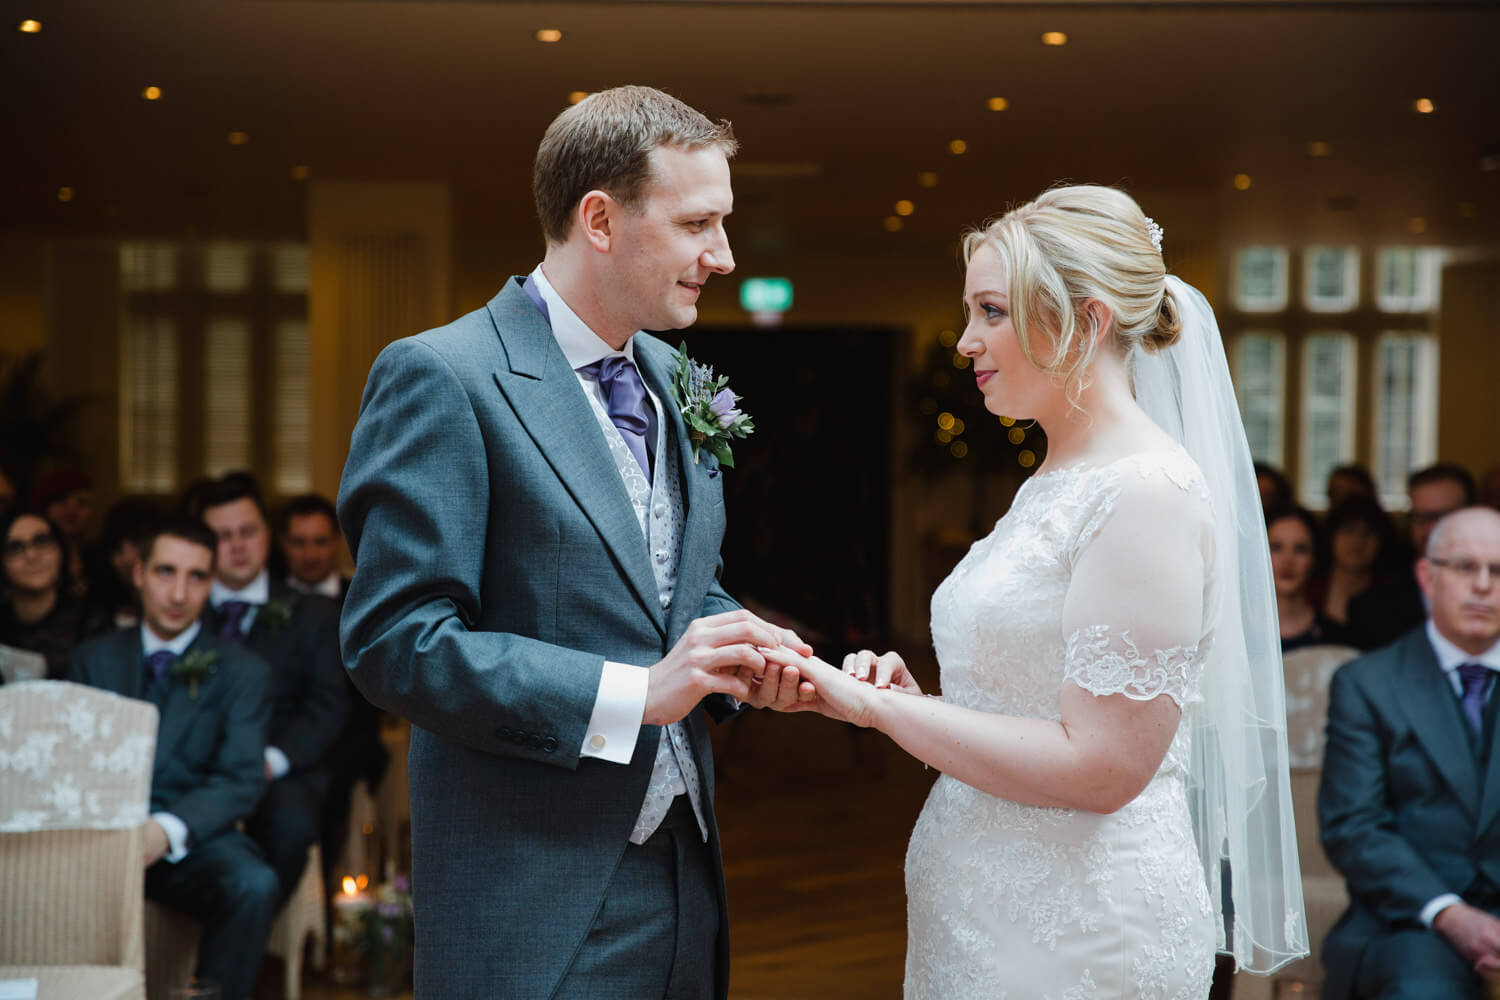 wedded couple exchanging wedding rings during service at Mitton Hall